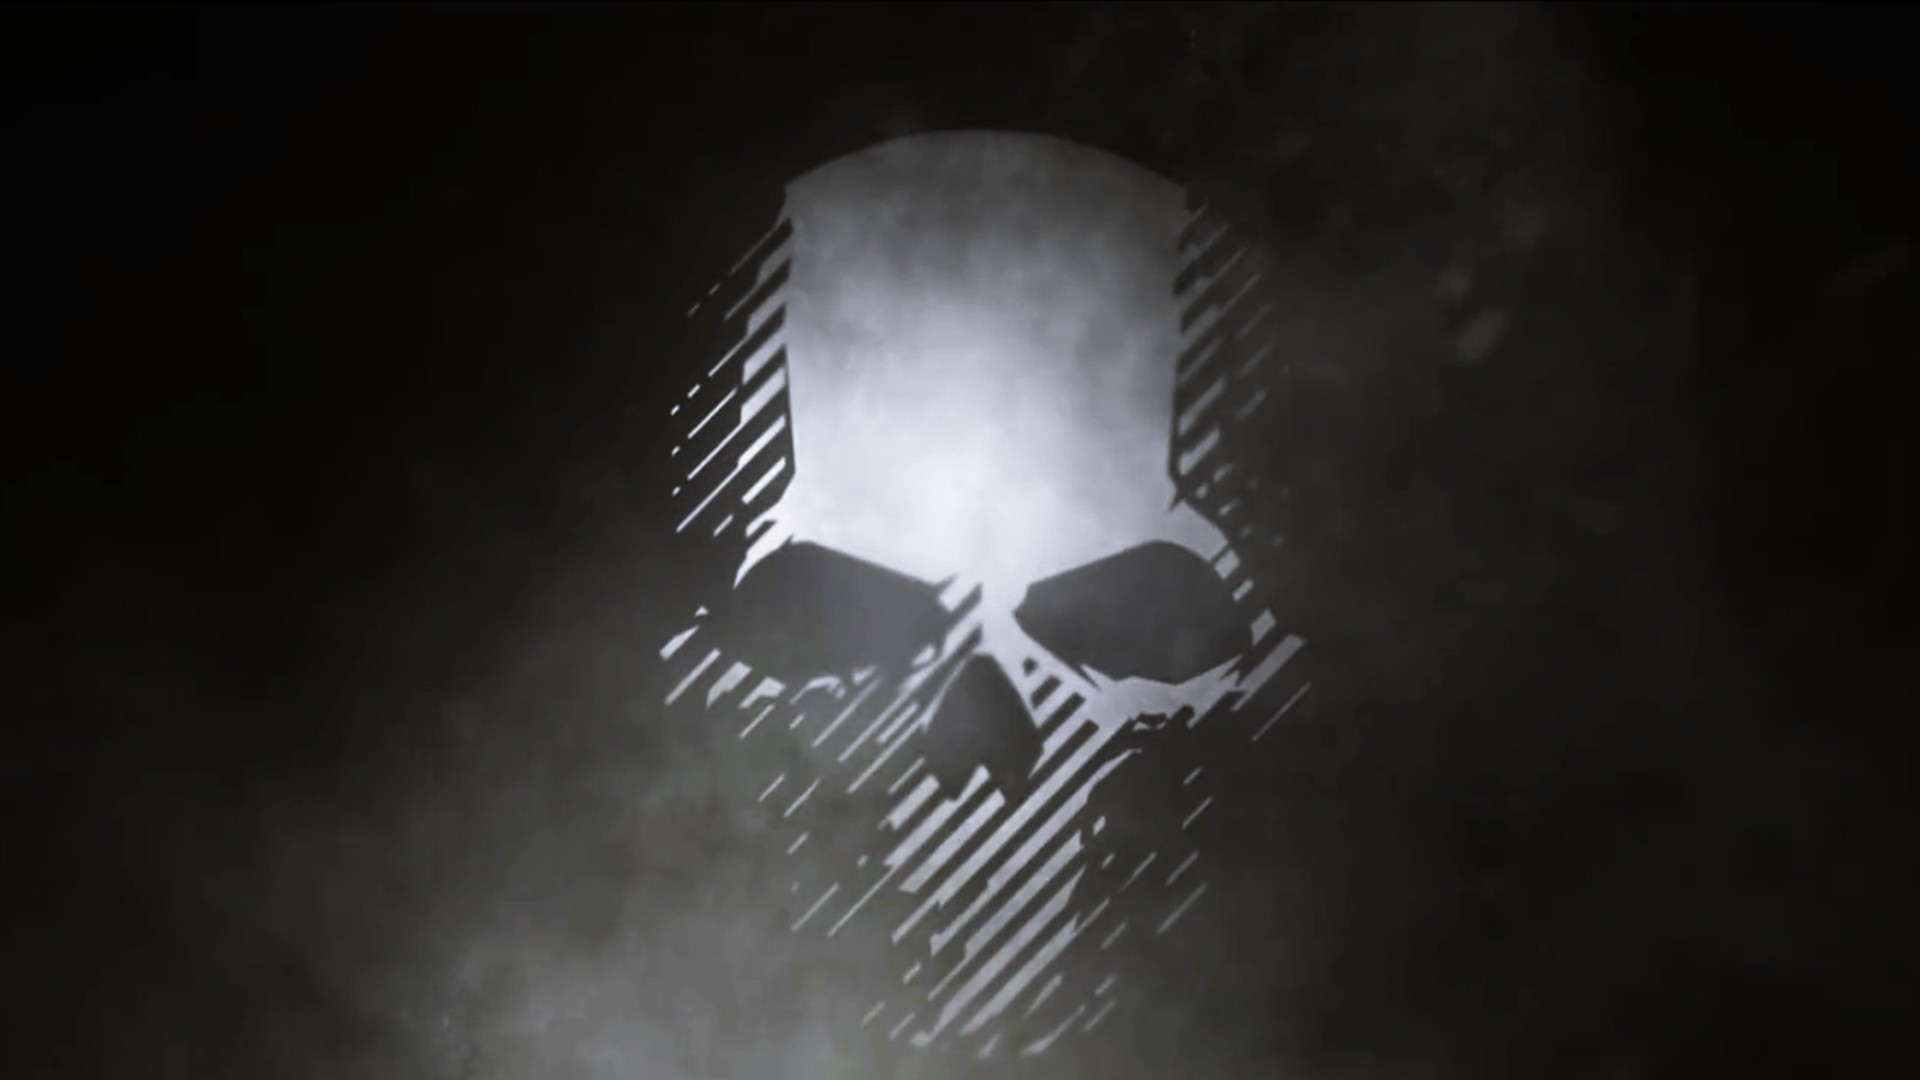 Ghost recon future soldier wallpaper 87 images - Ghost recon wildlands mobile wallpaper ...